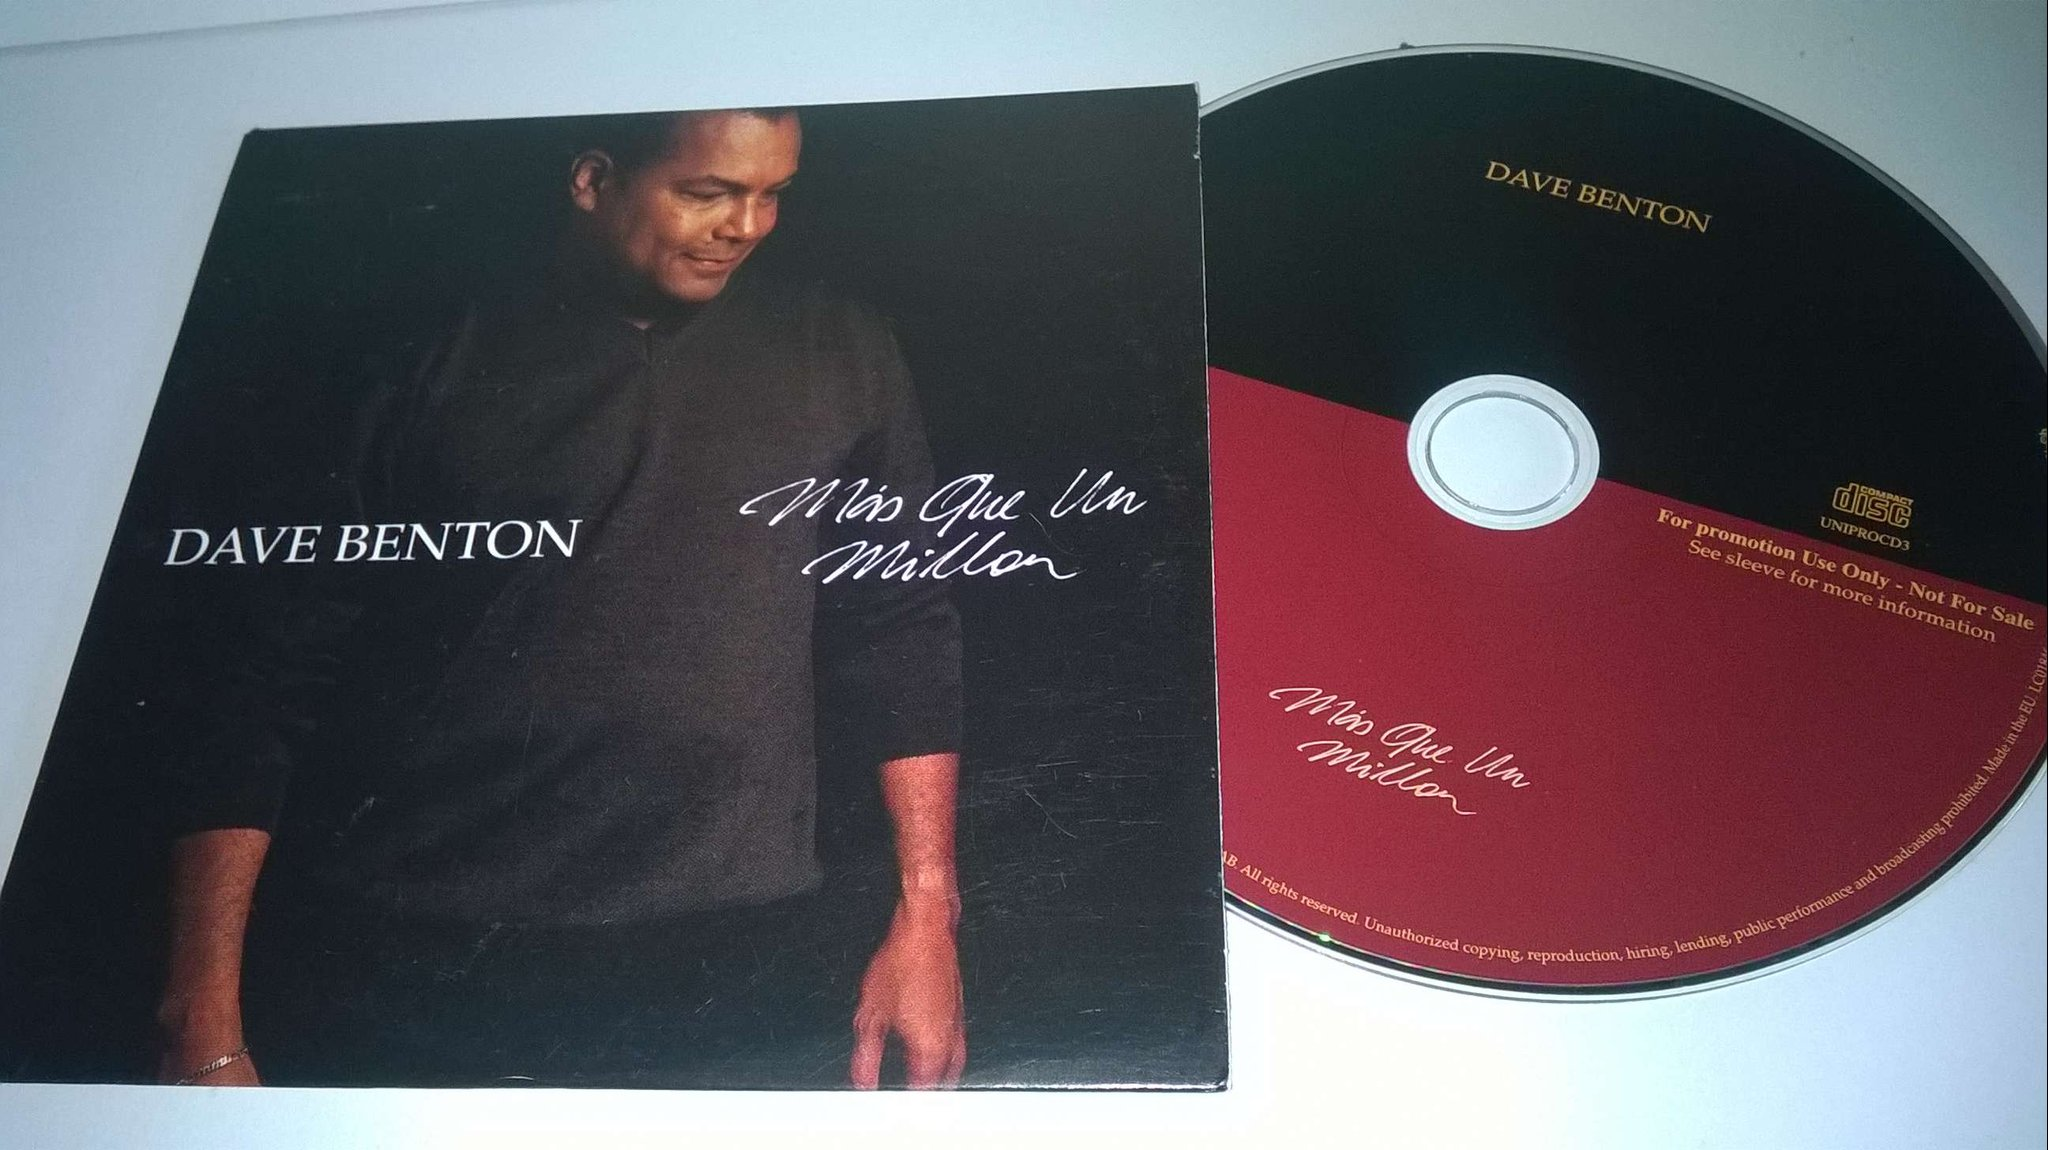 Dave Benton - Mis que un millon, single CD